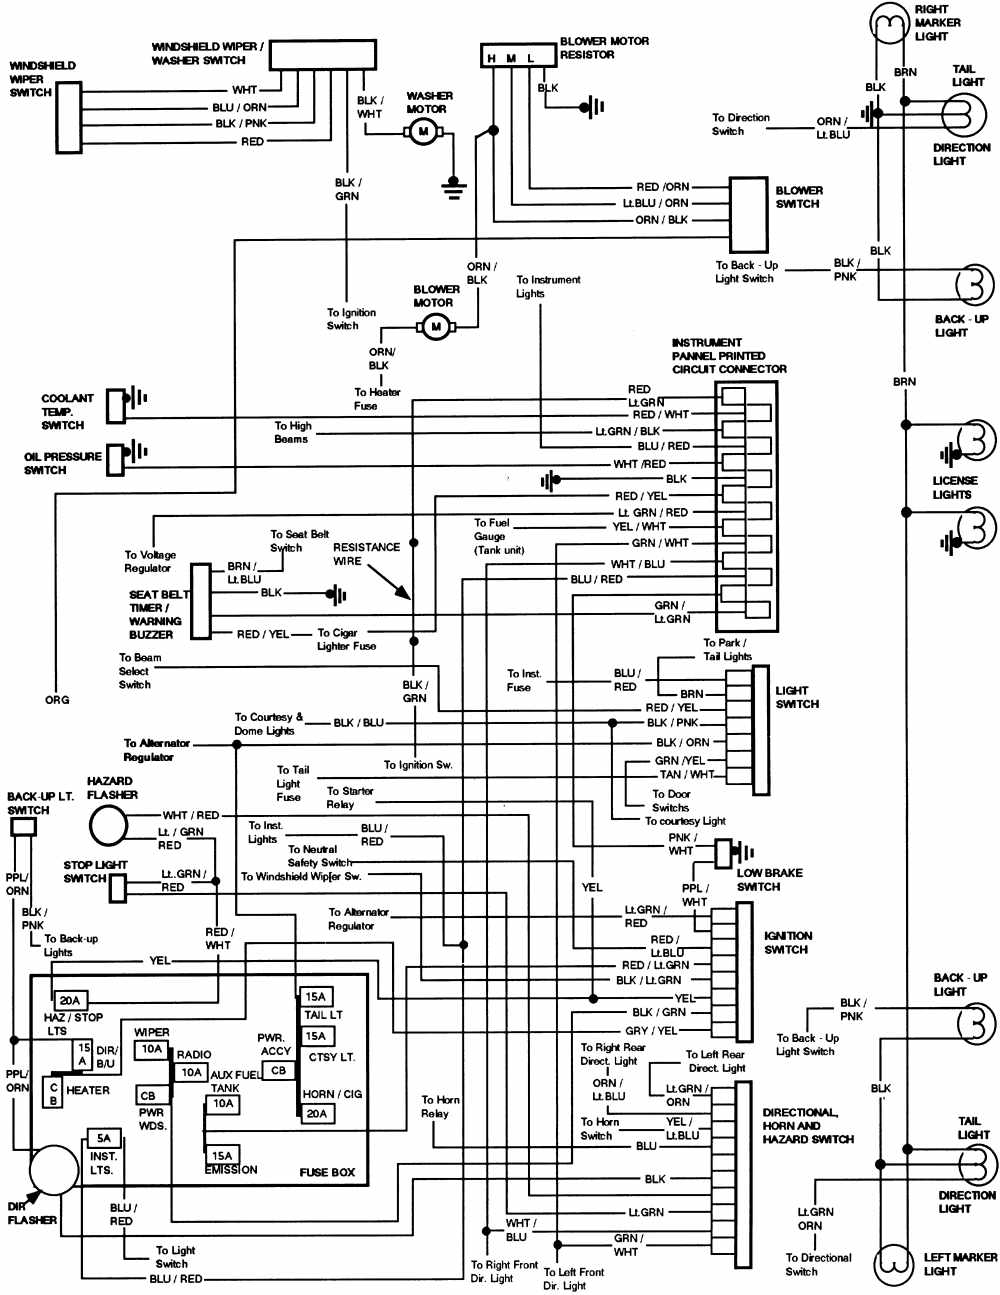 4x4 wiring diagram on 2003 f250 powerstroke